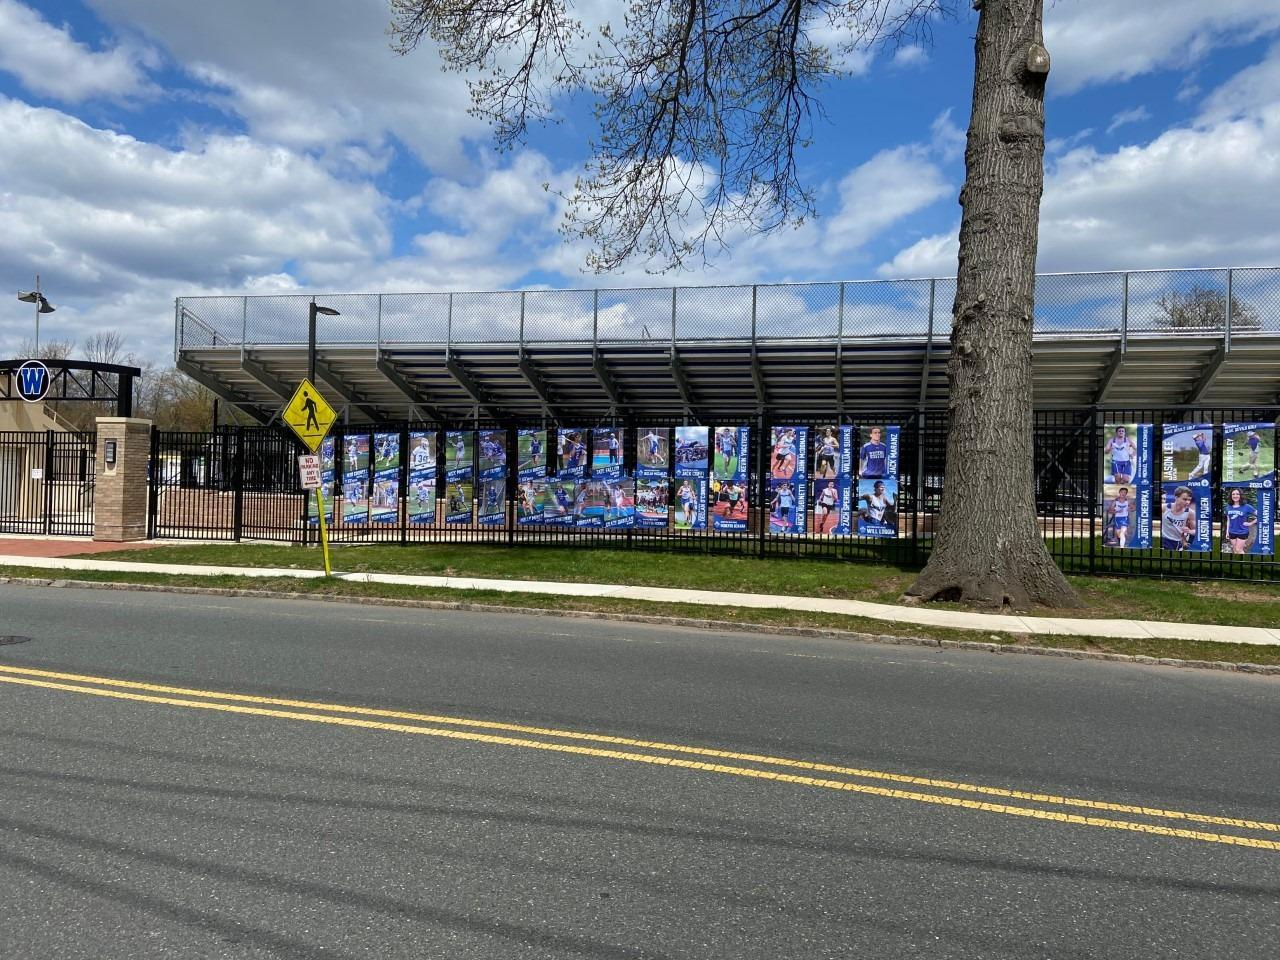 Take a drive by Kehler Stadium and see the wall of senior athletes!